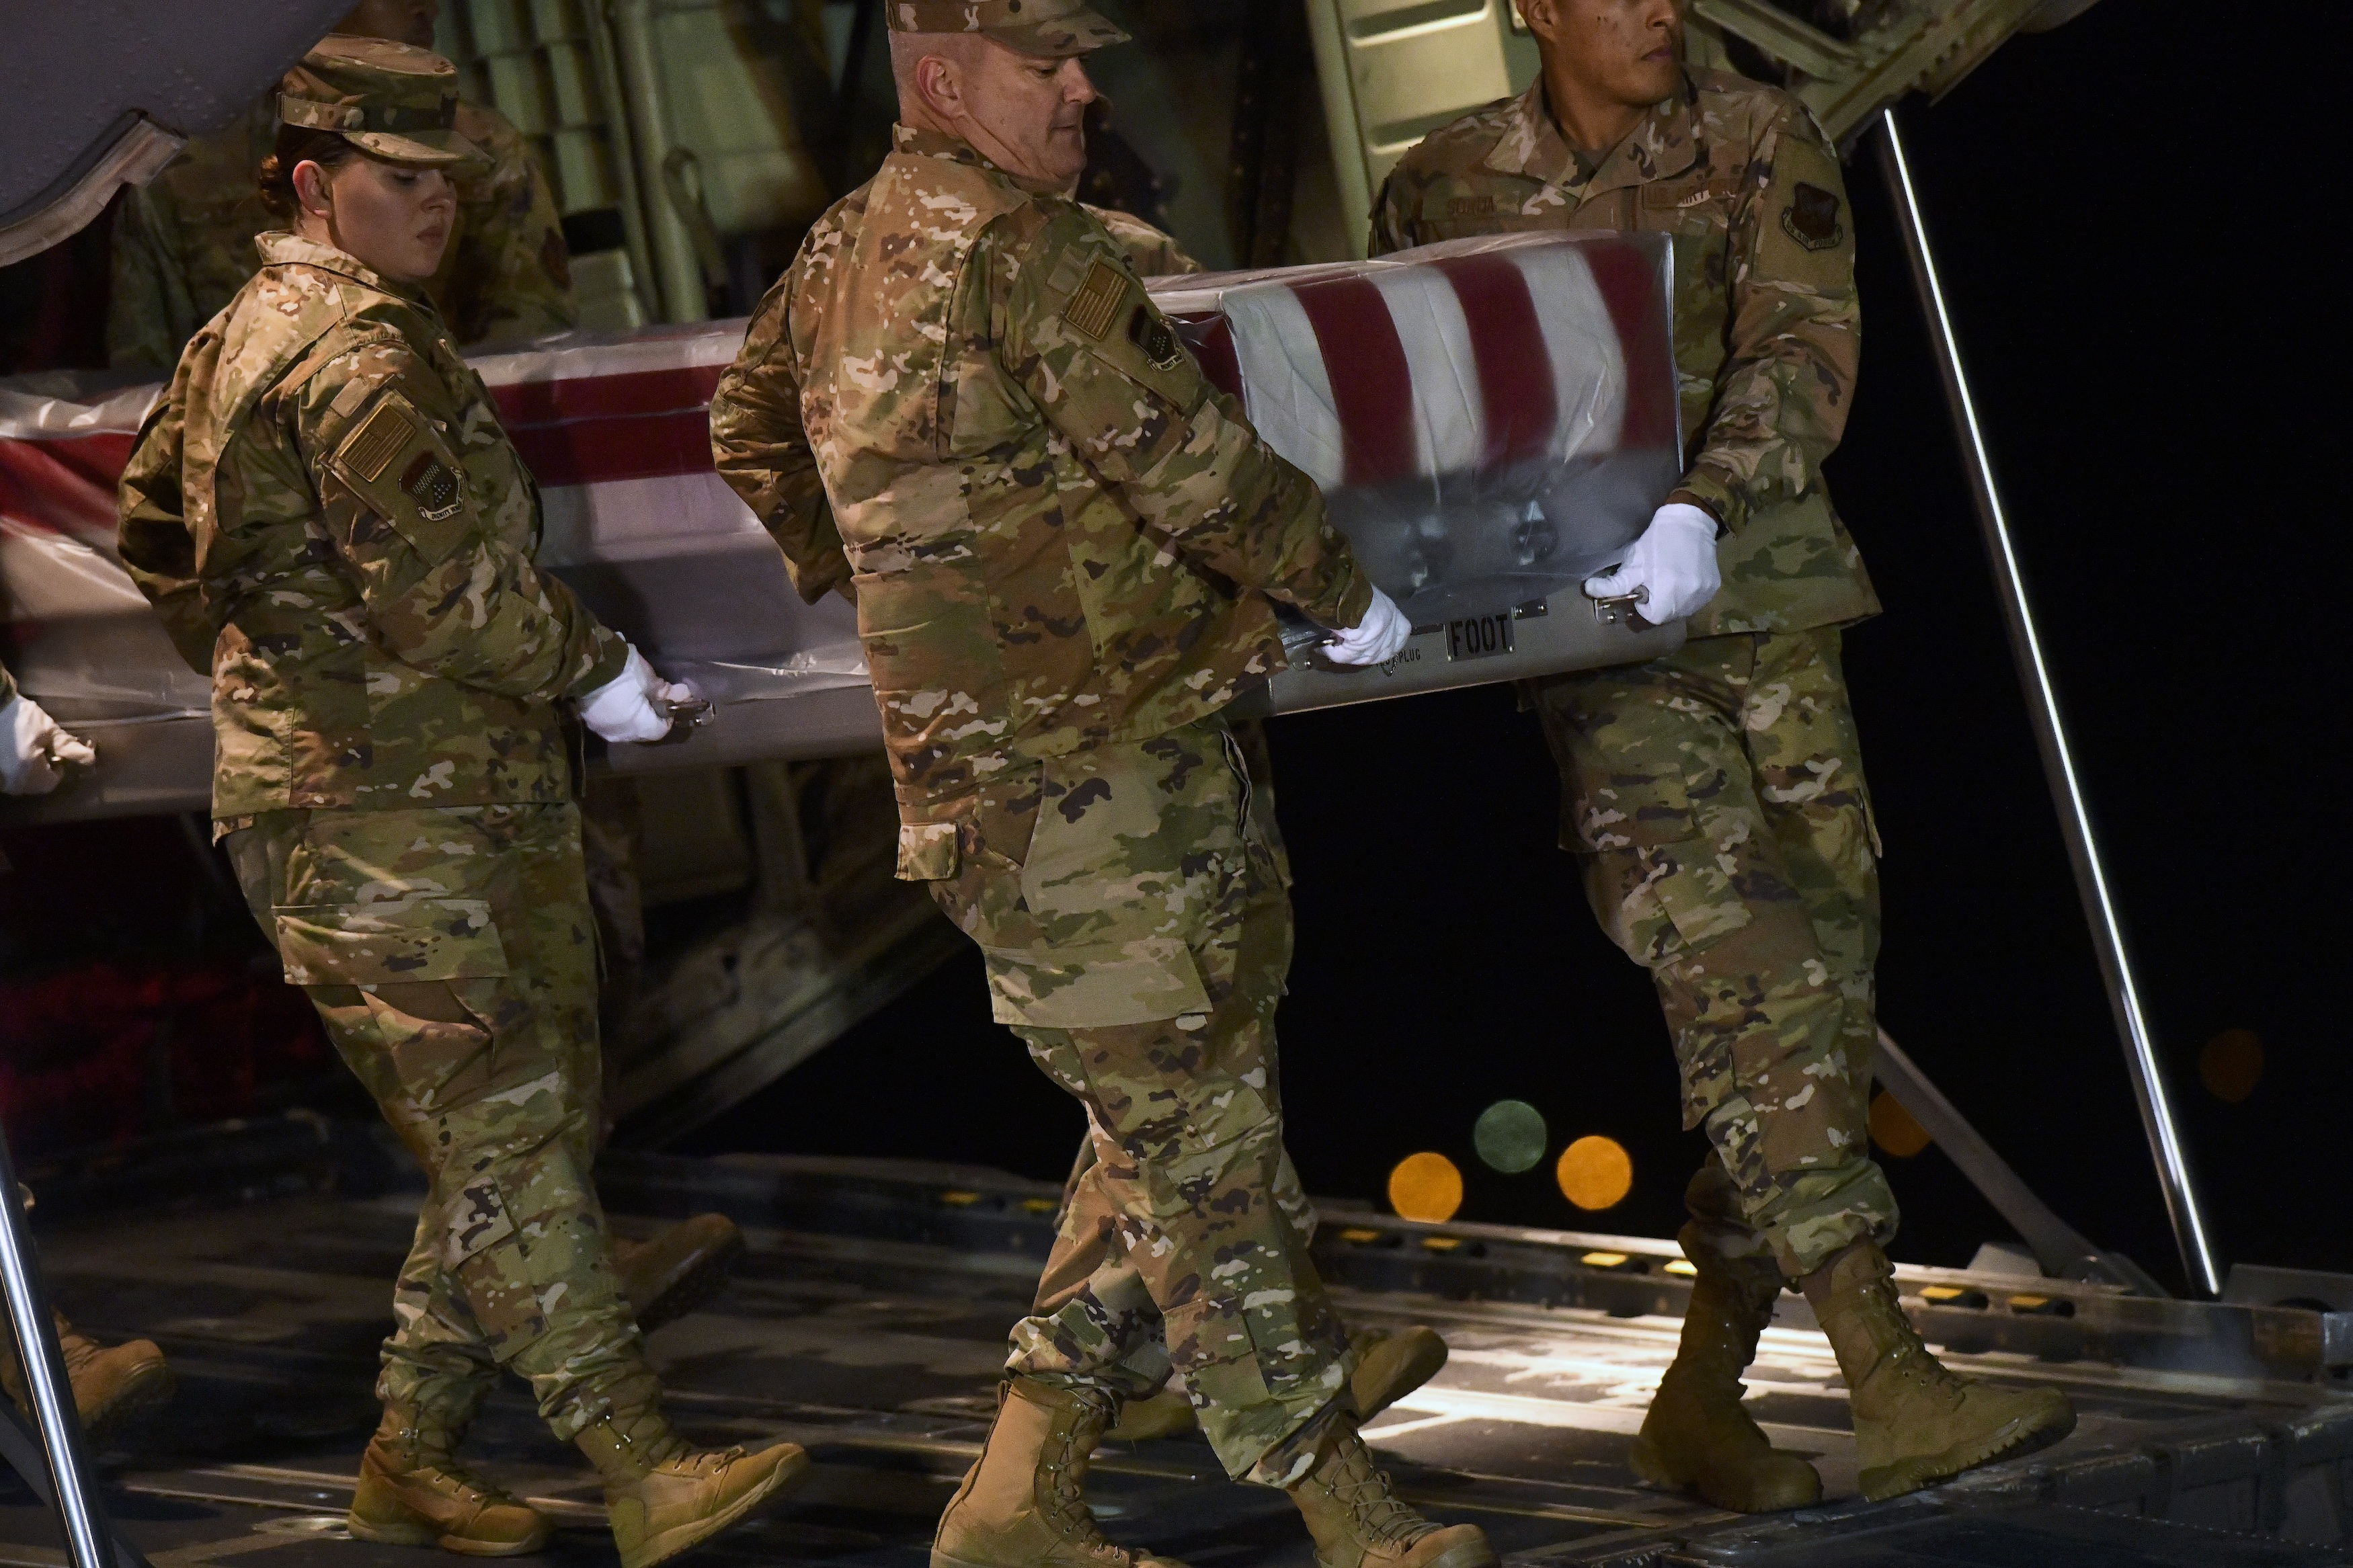 Military personnel carry a transfer case for fallen service member, U.S. Navy Seaman Apprentice Cameron S. Walters, 21, during a dignified transfer at Dover Air Force Base on December 8, 2019 in Dover, Delaware.(Mark Makela/Getty Images)